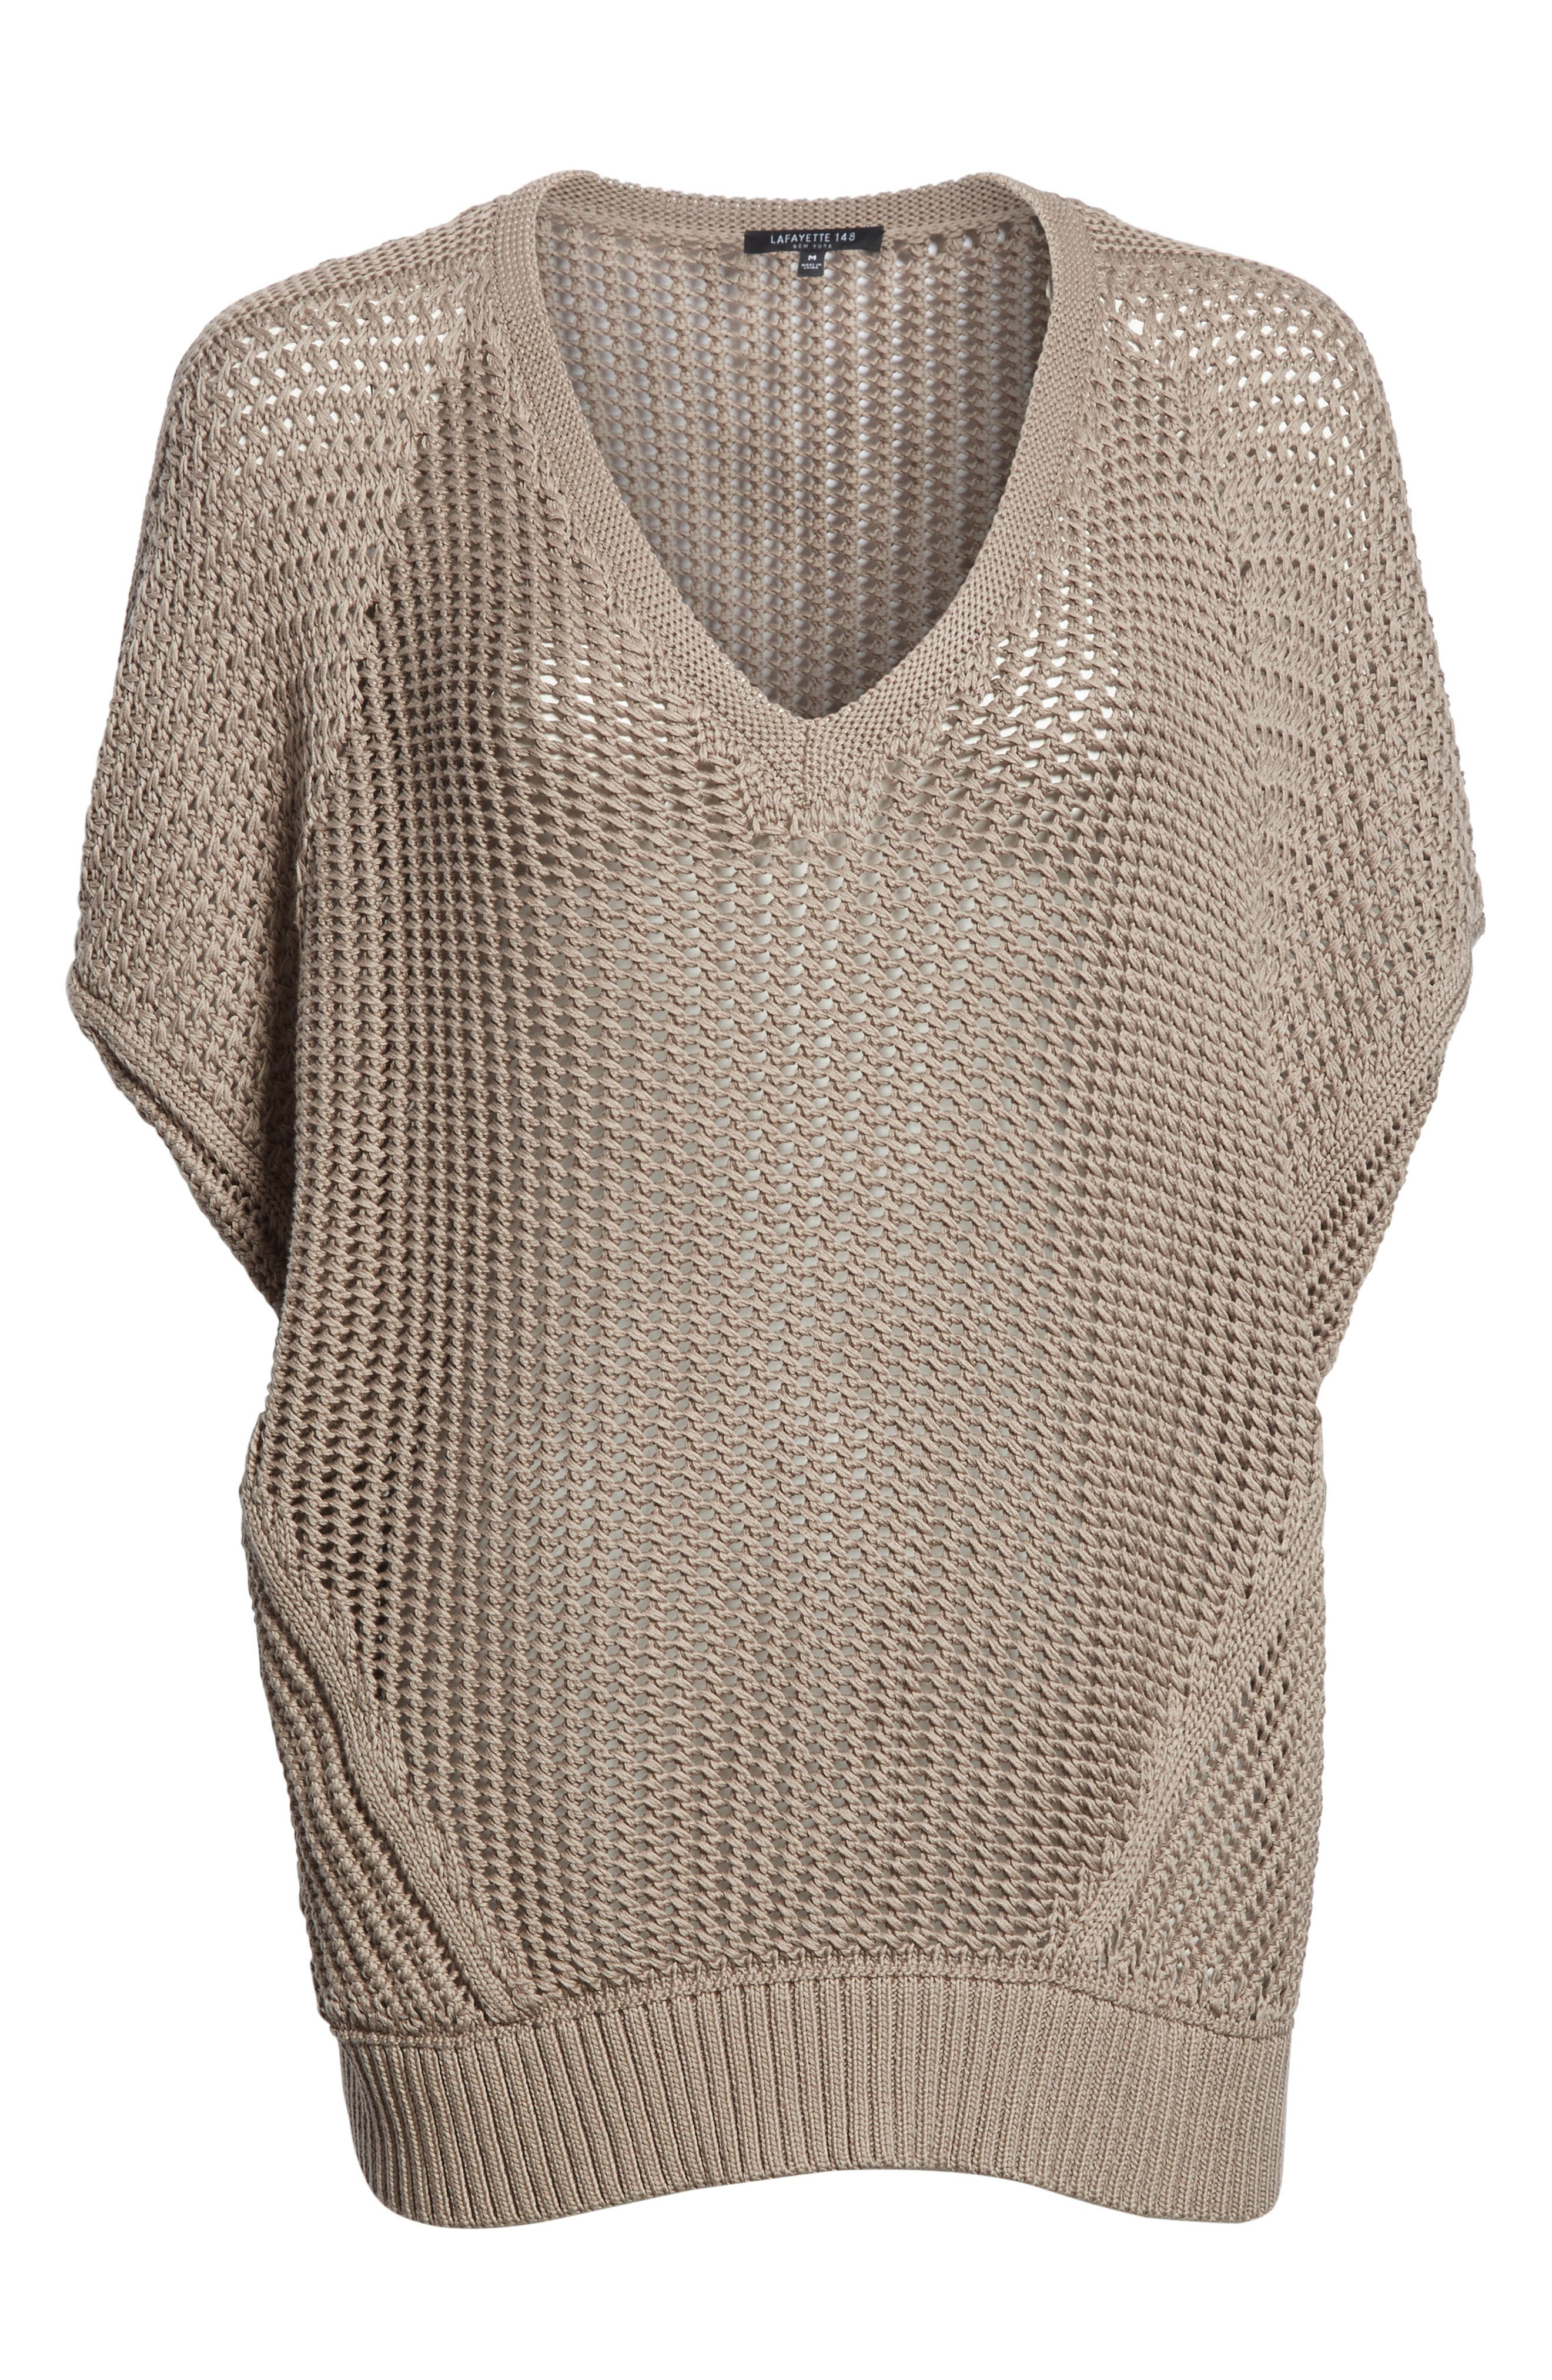 Mixed Stitch Cotton & Silk Sweater,                             Alternate thumbnail 6, color,                             026